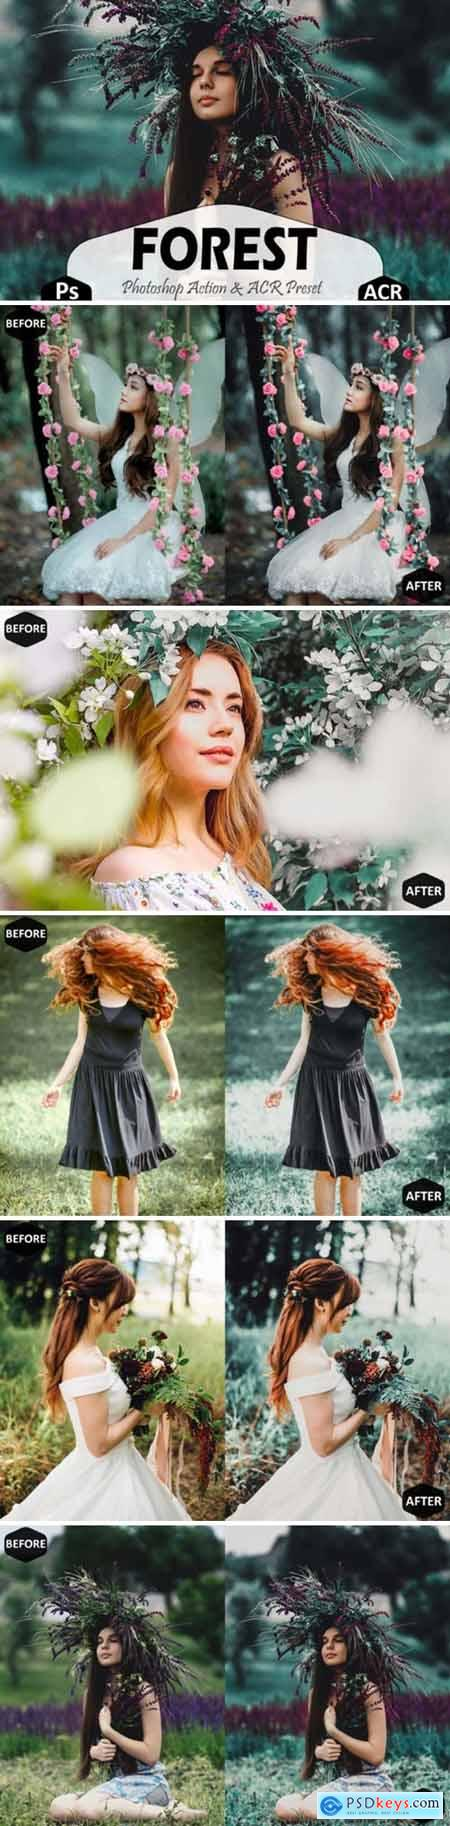 Forest Photoshop Actions and ACR Presets 1629295